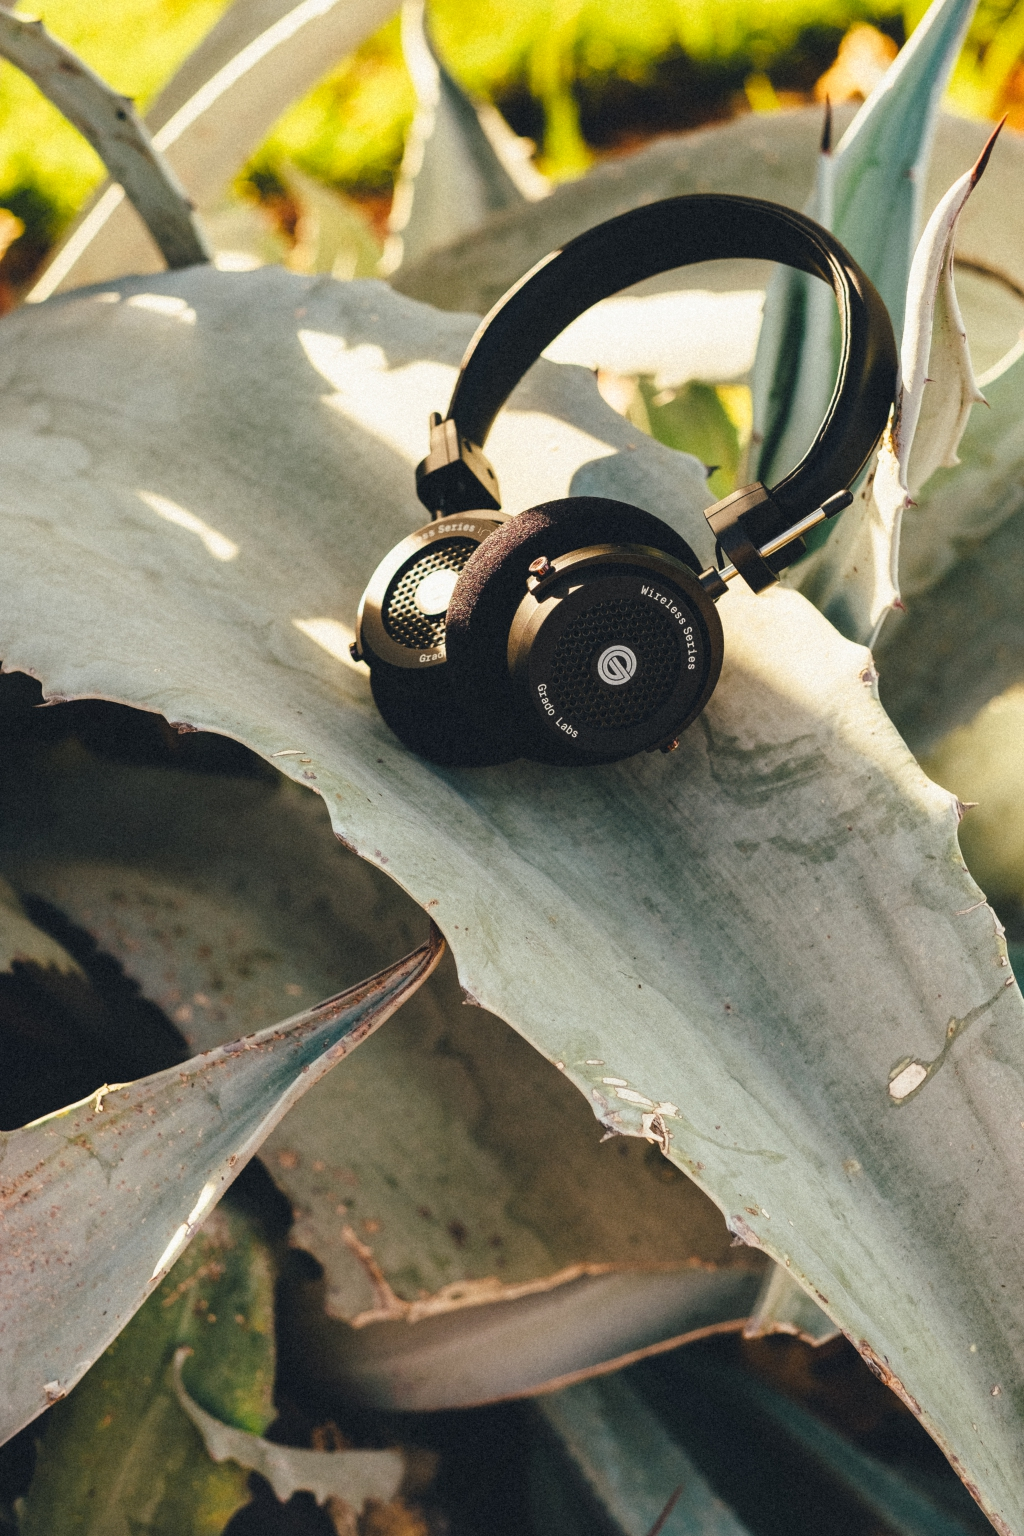 grado, grado labs, grado headphones, sunset park, brooklyn, brooklyn headphone company, three generations of sound, GW100, wireless, bluetooth, leaves, palm trees, agave, green, coast, island